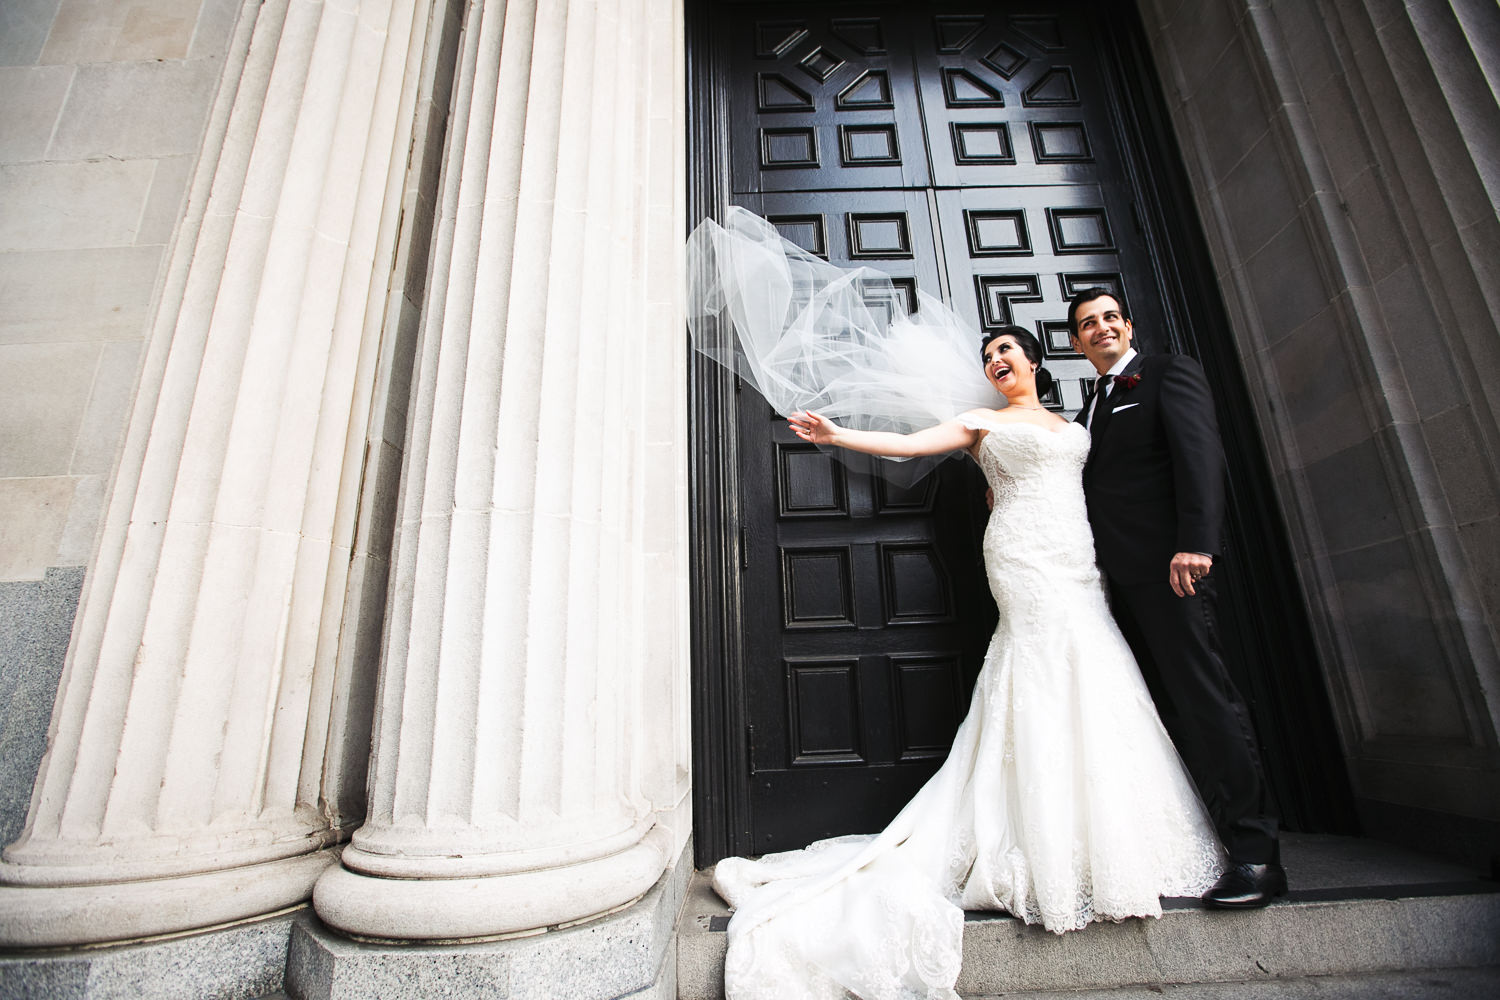 Vibiana Wedding Photographs of Bride & Groom Outside the Front Doors